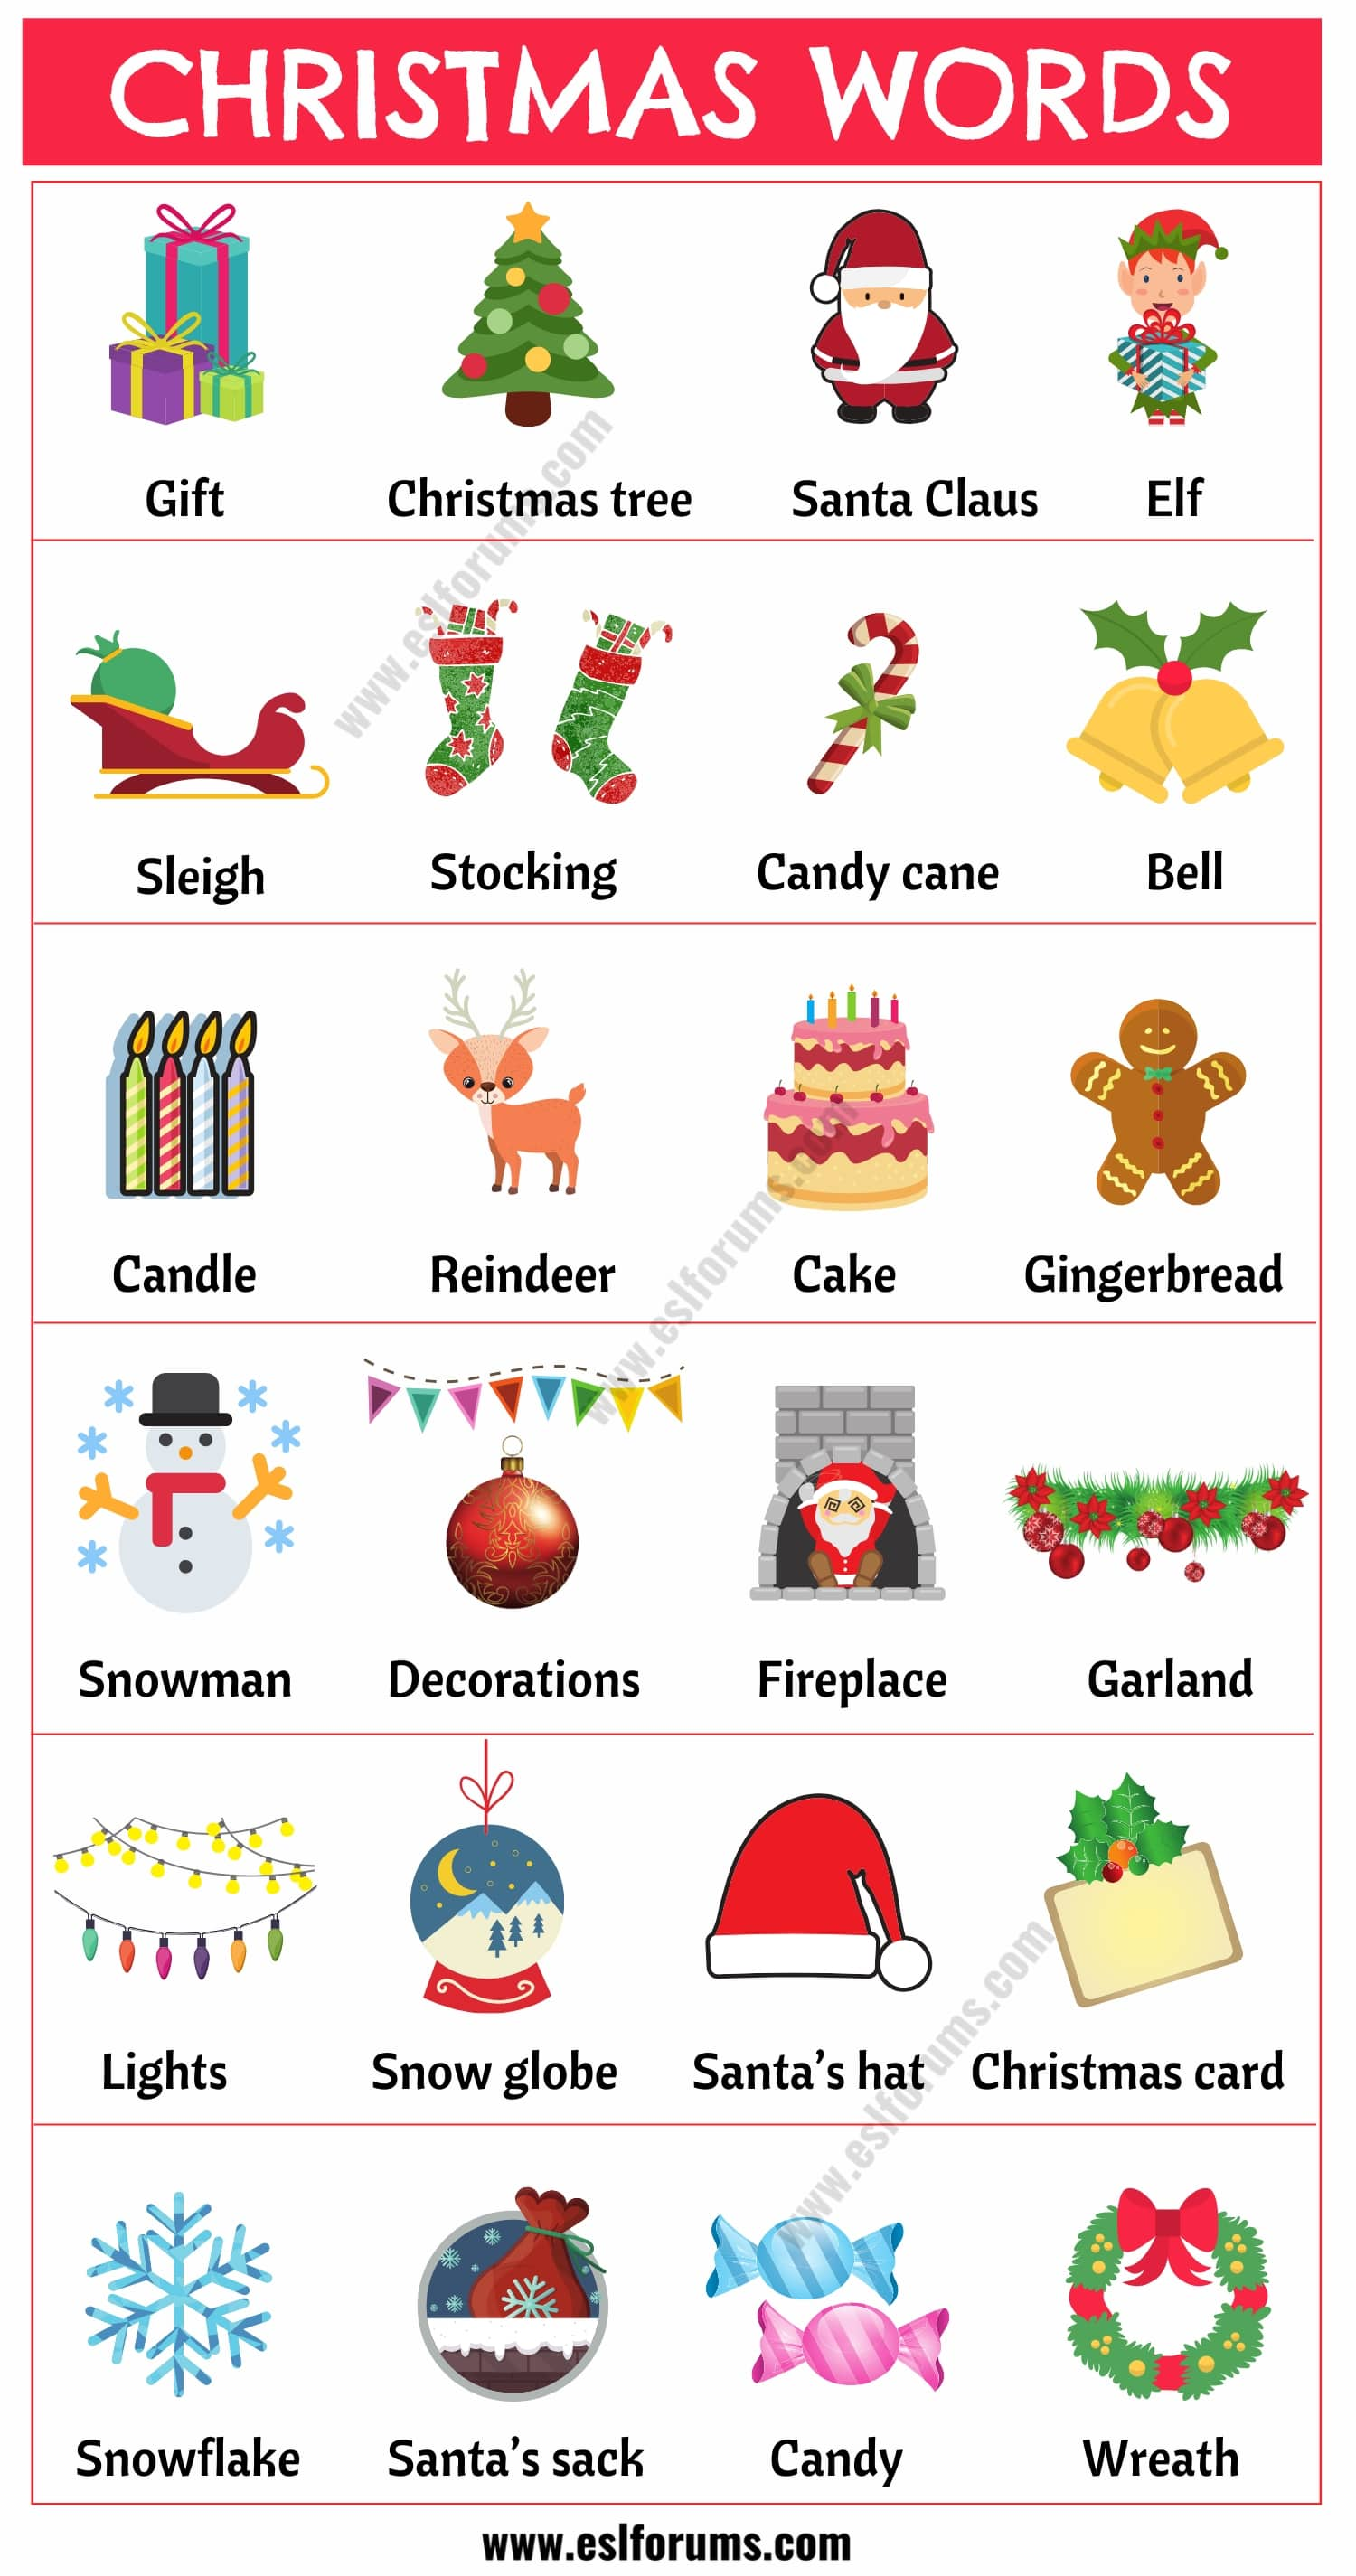 Christmas Words: List of Useful Words Related to Christmas with Example Sentences